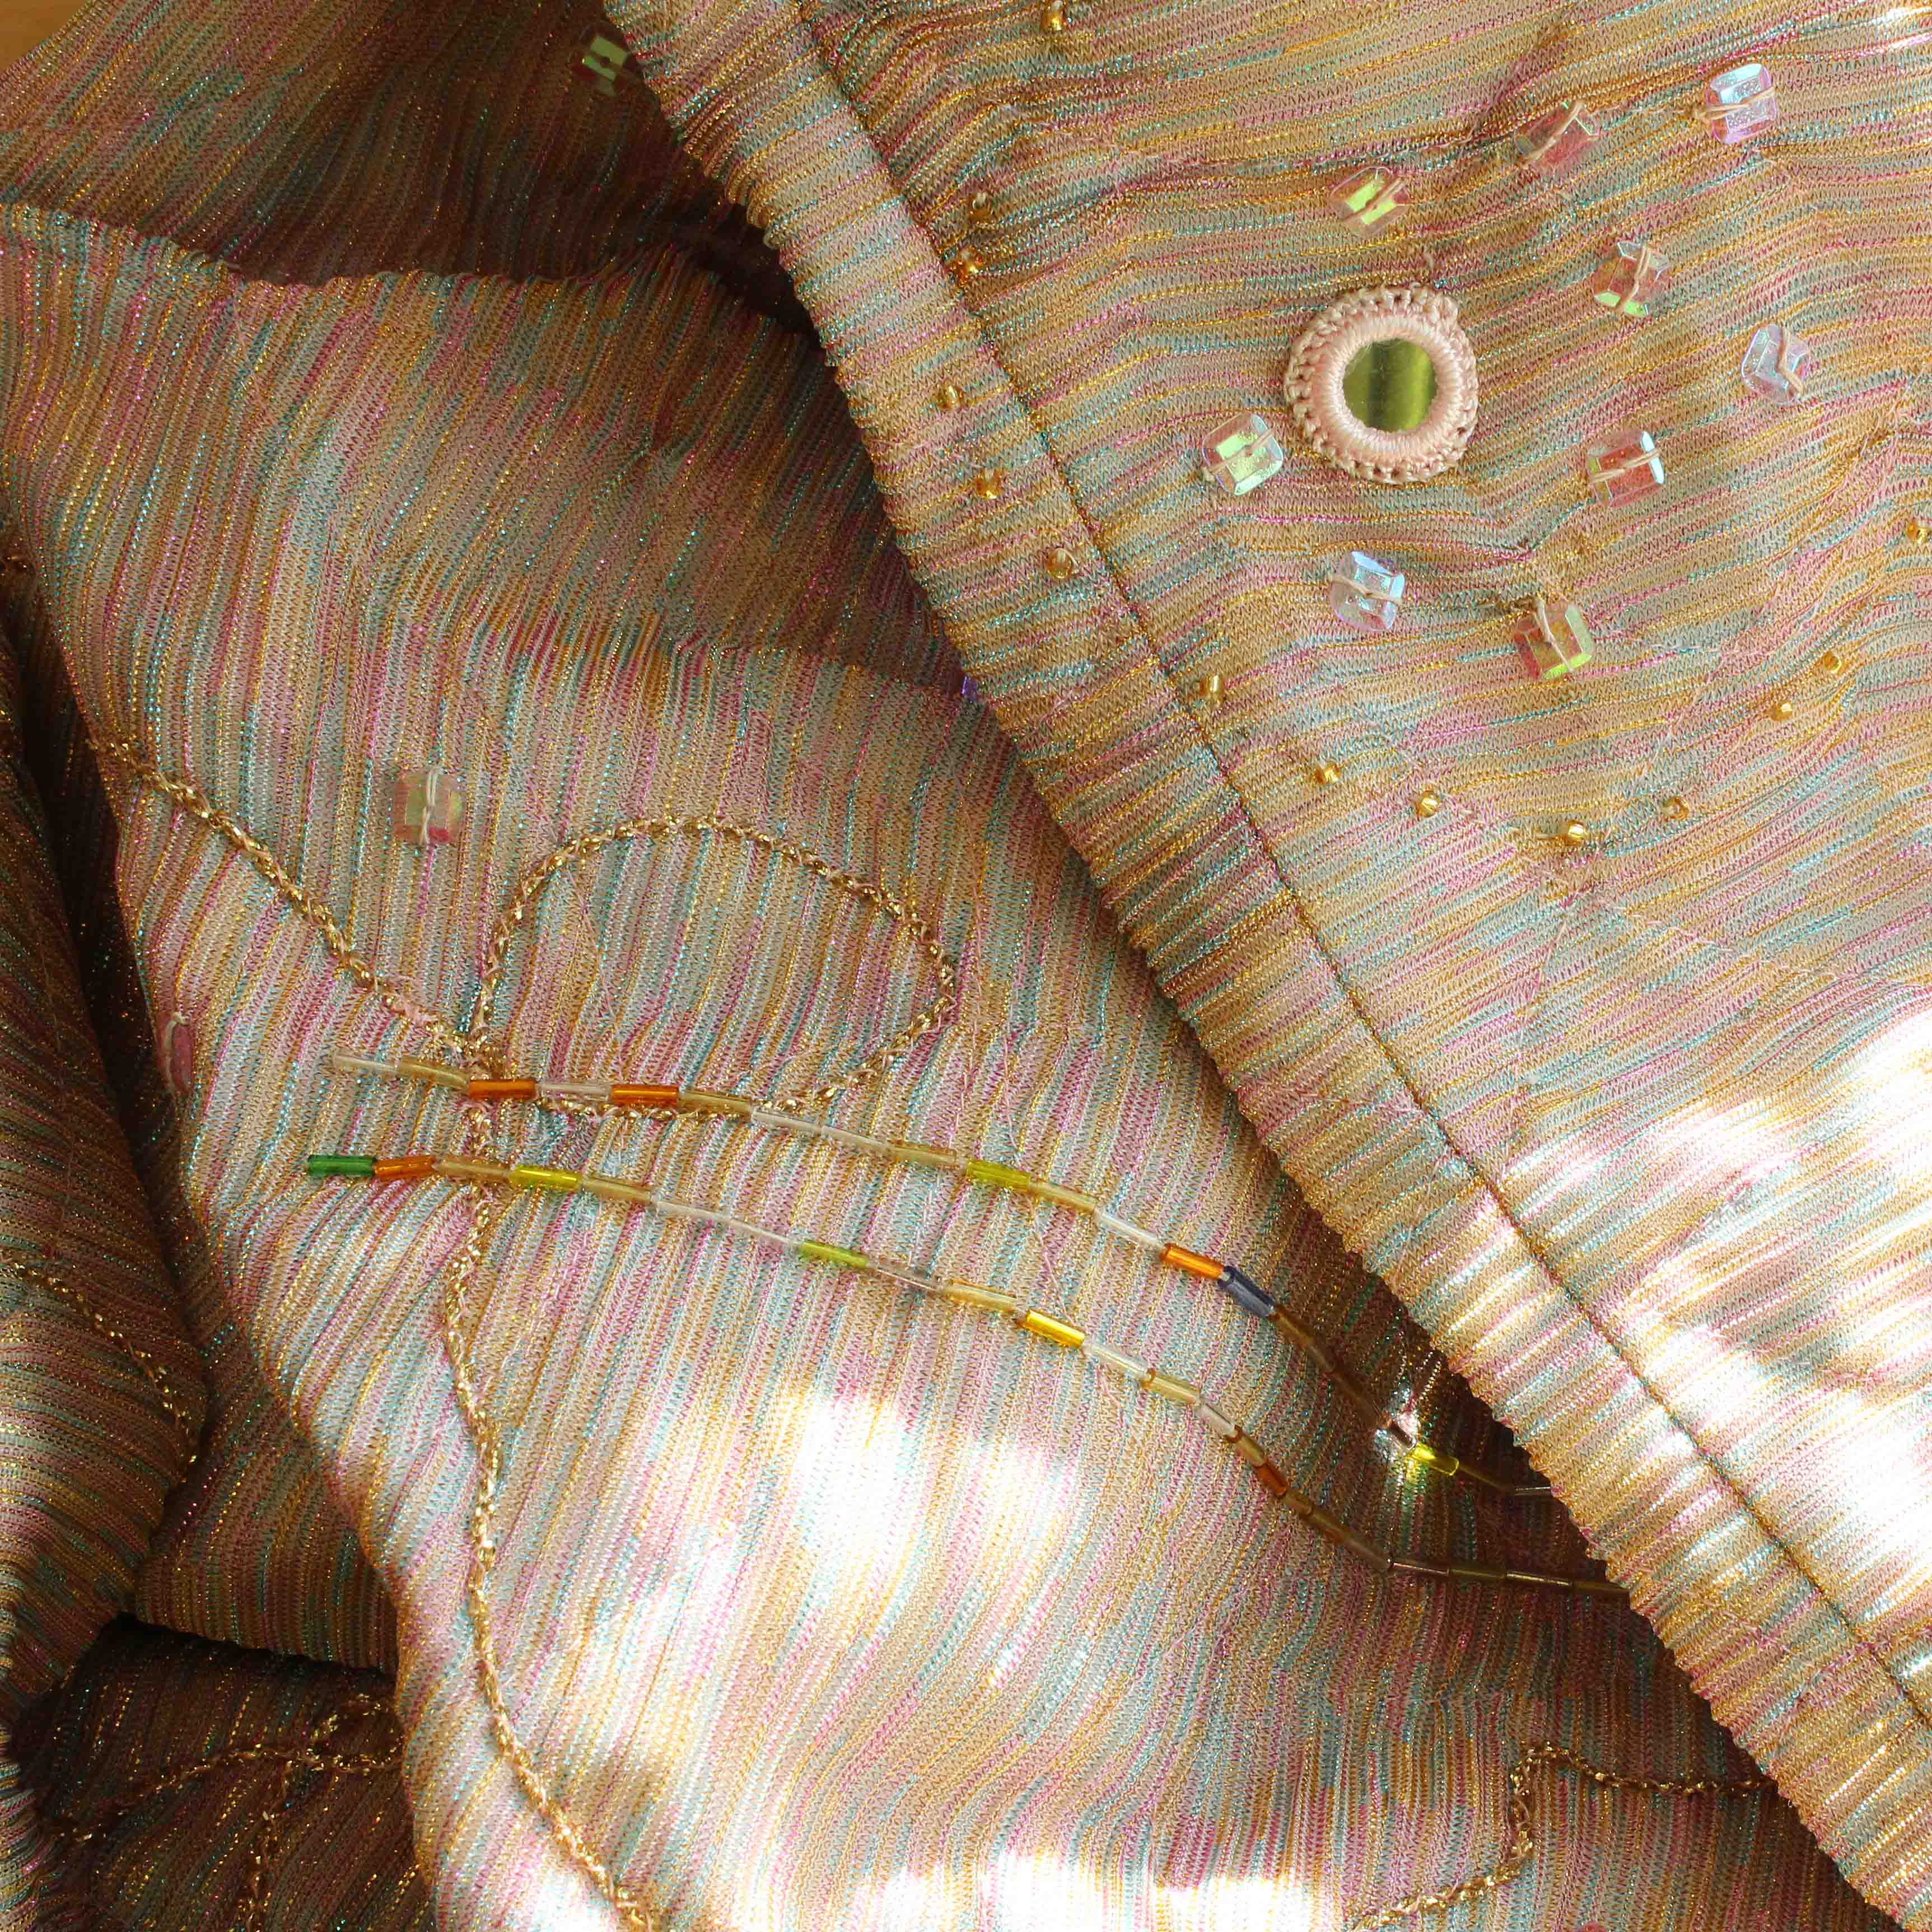 Close-up of the costume. The image depicts the fabric that glitters in pink, yellow, light blue and silver, with details like embroideries, pearls and buttons.